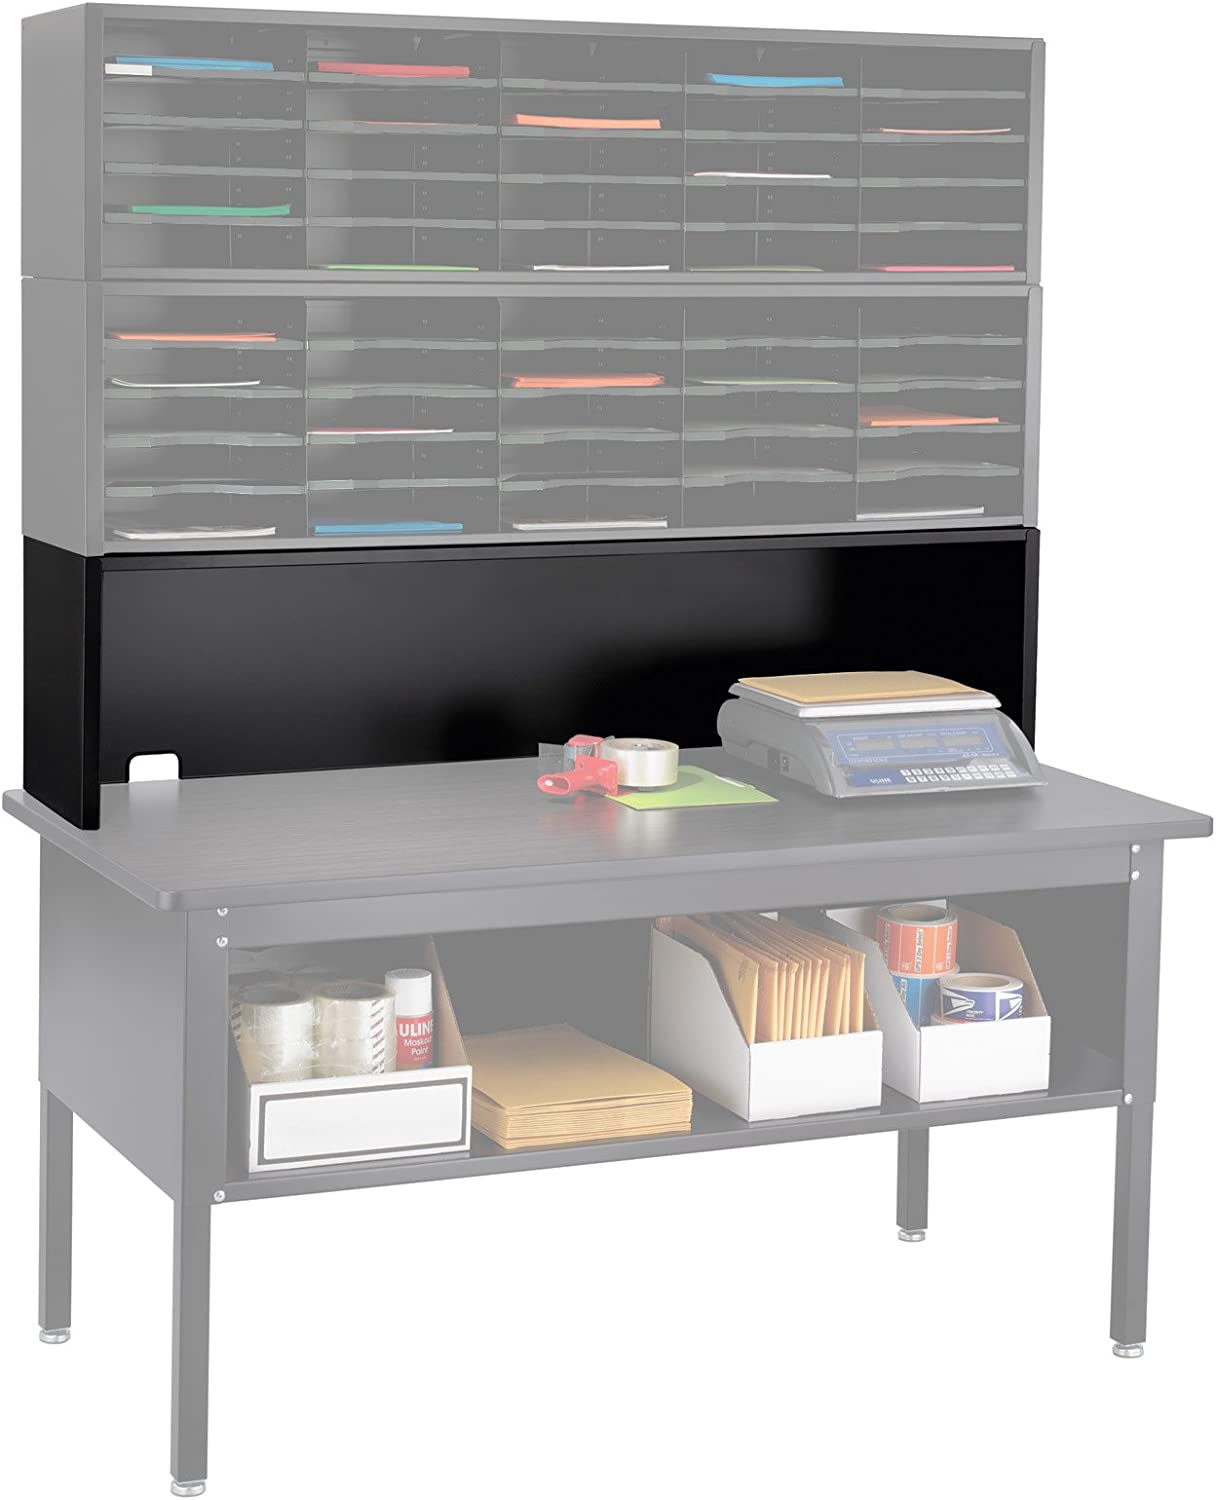 Safco Products 7752BL E-Z Sort Mail Station Riser for use with Sorting Table, sold separately, Black